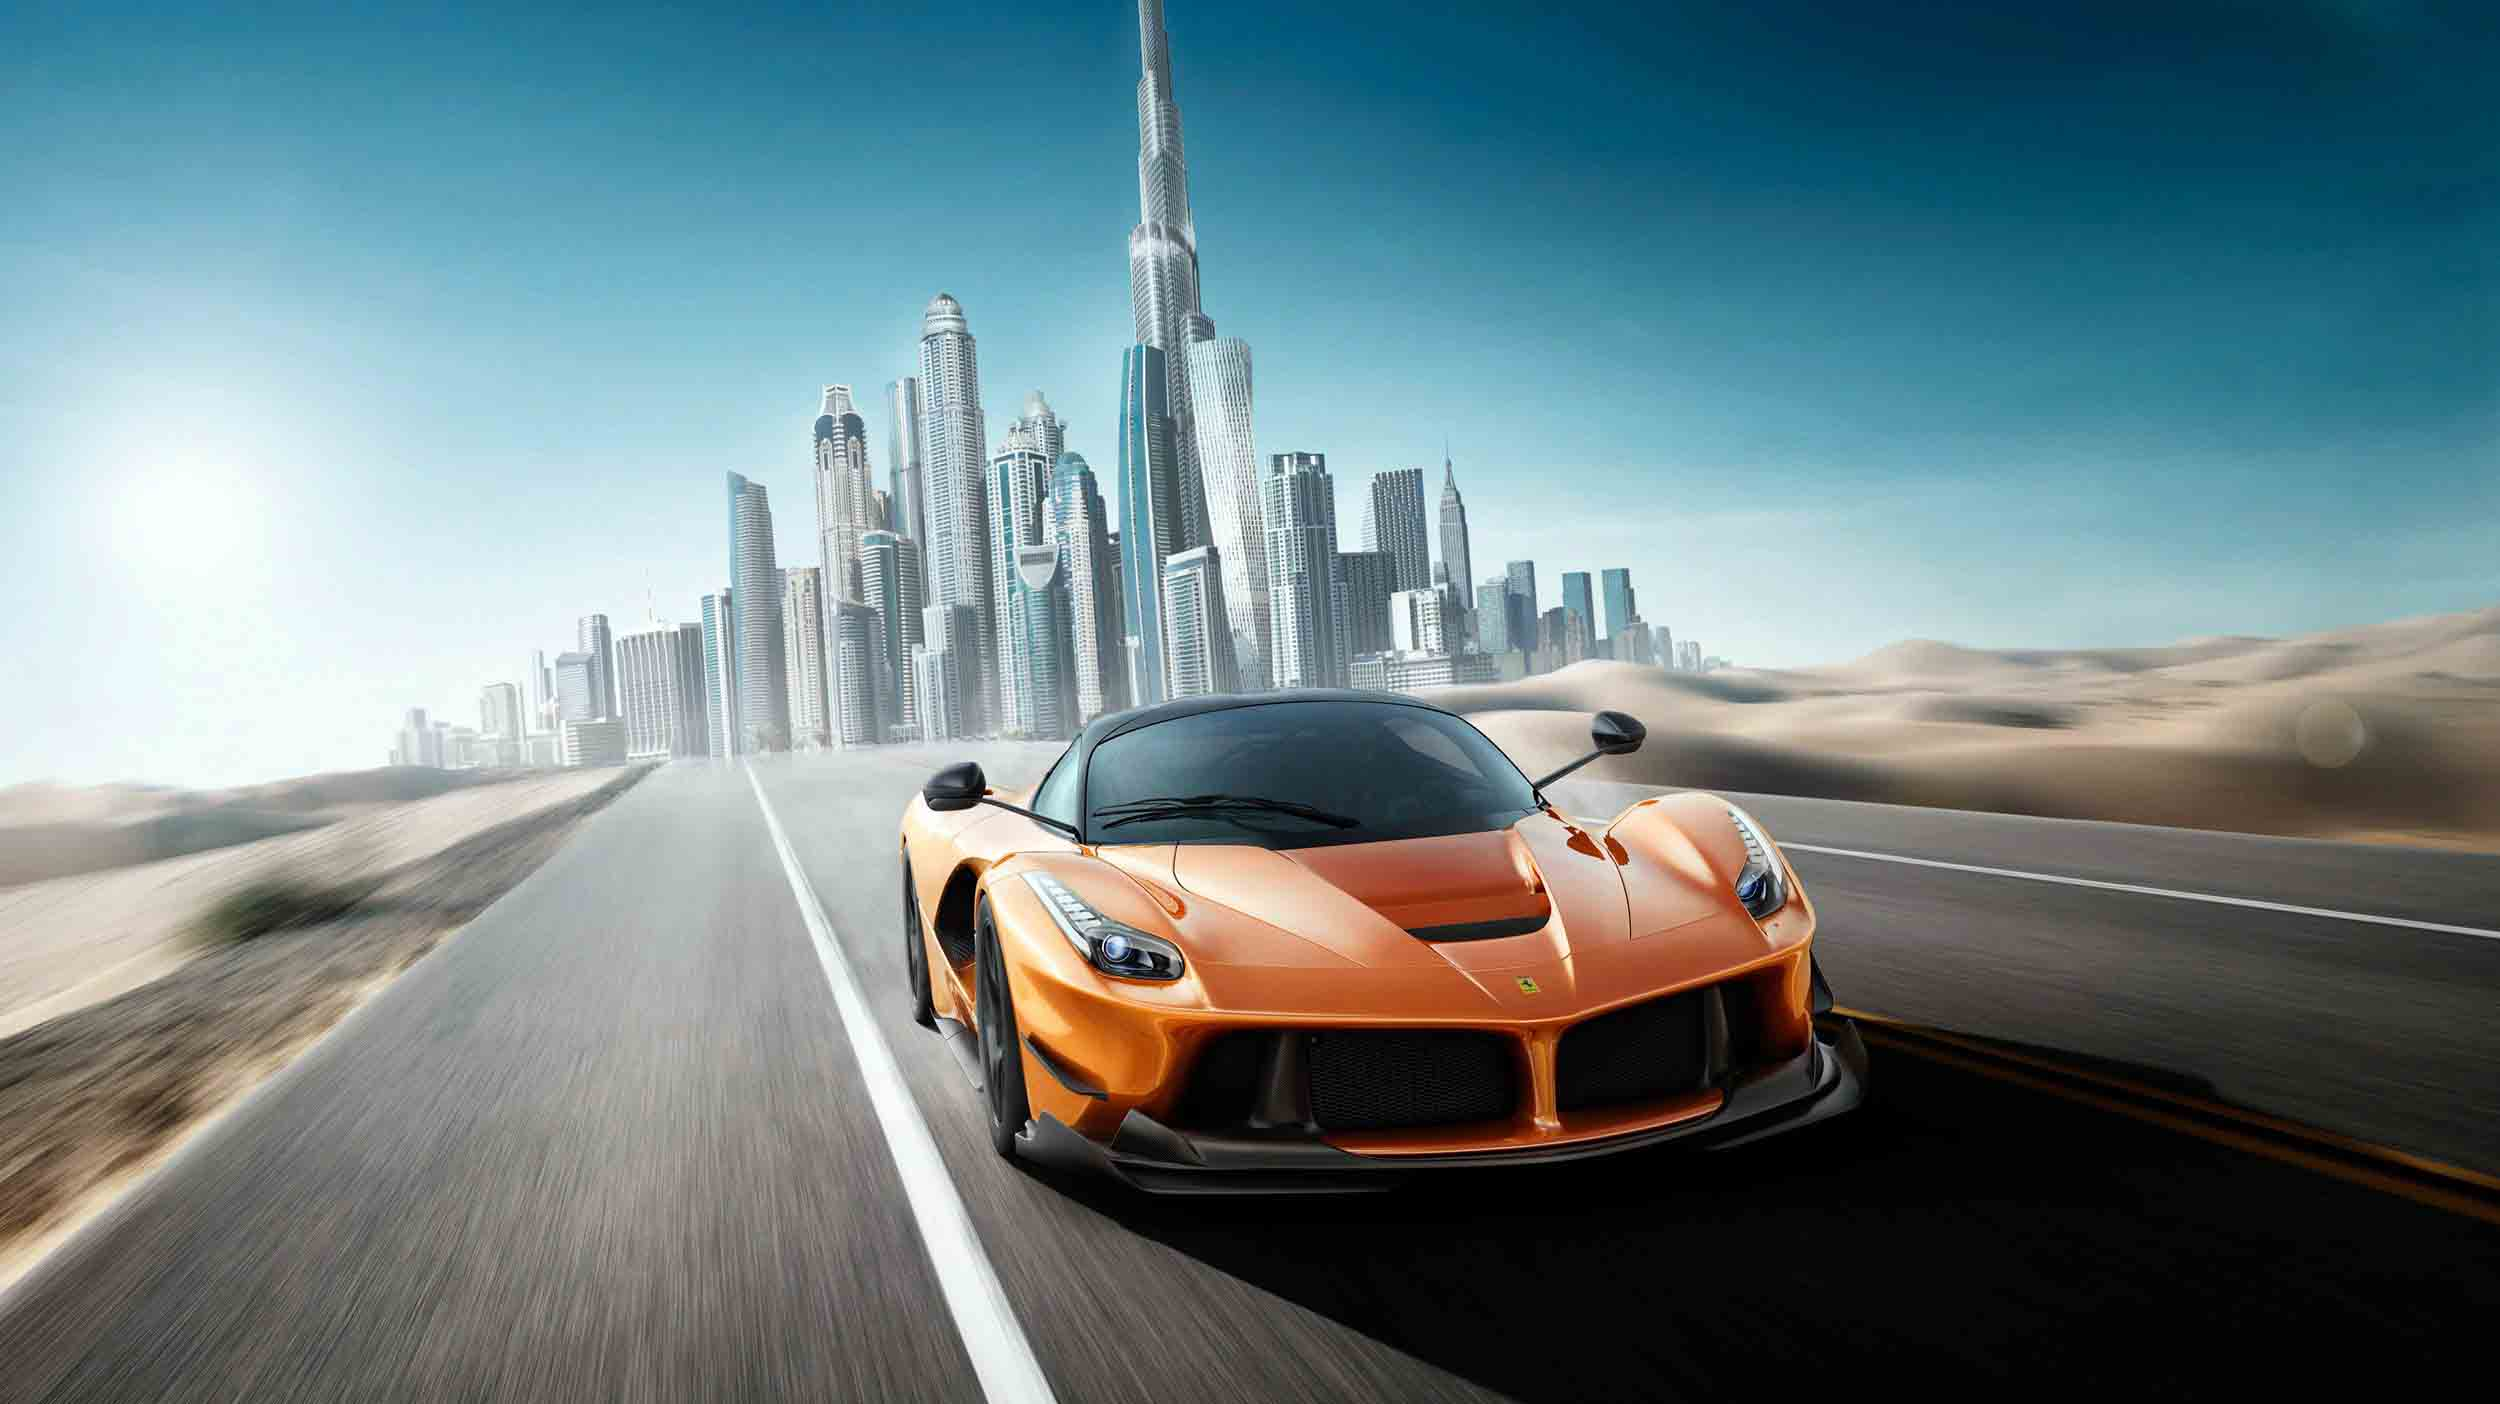 Rent Luxury and Sports Cars in Dubai